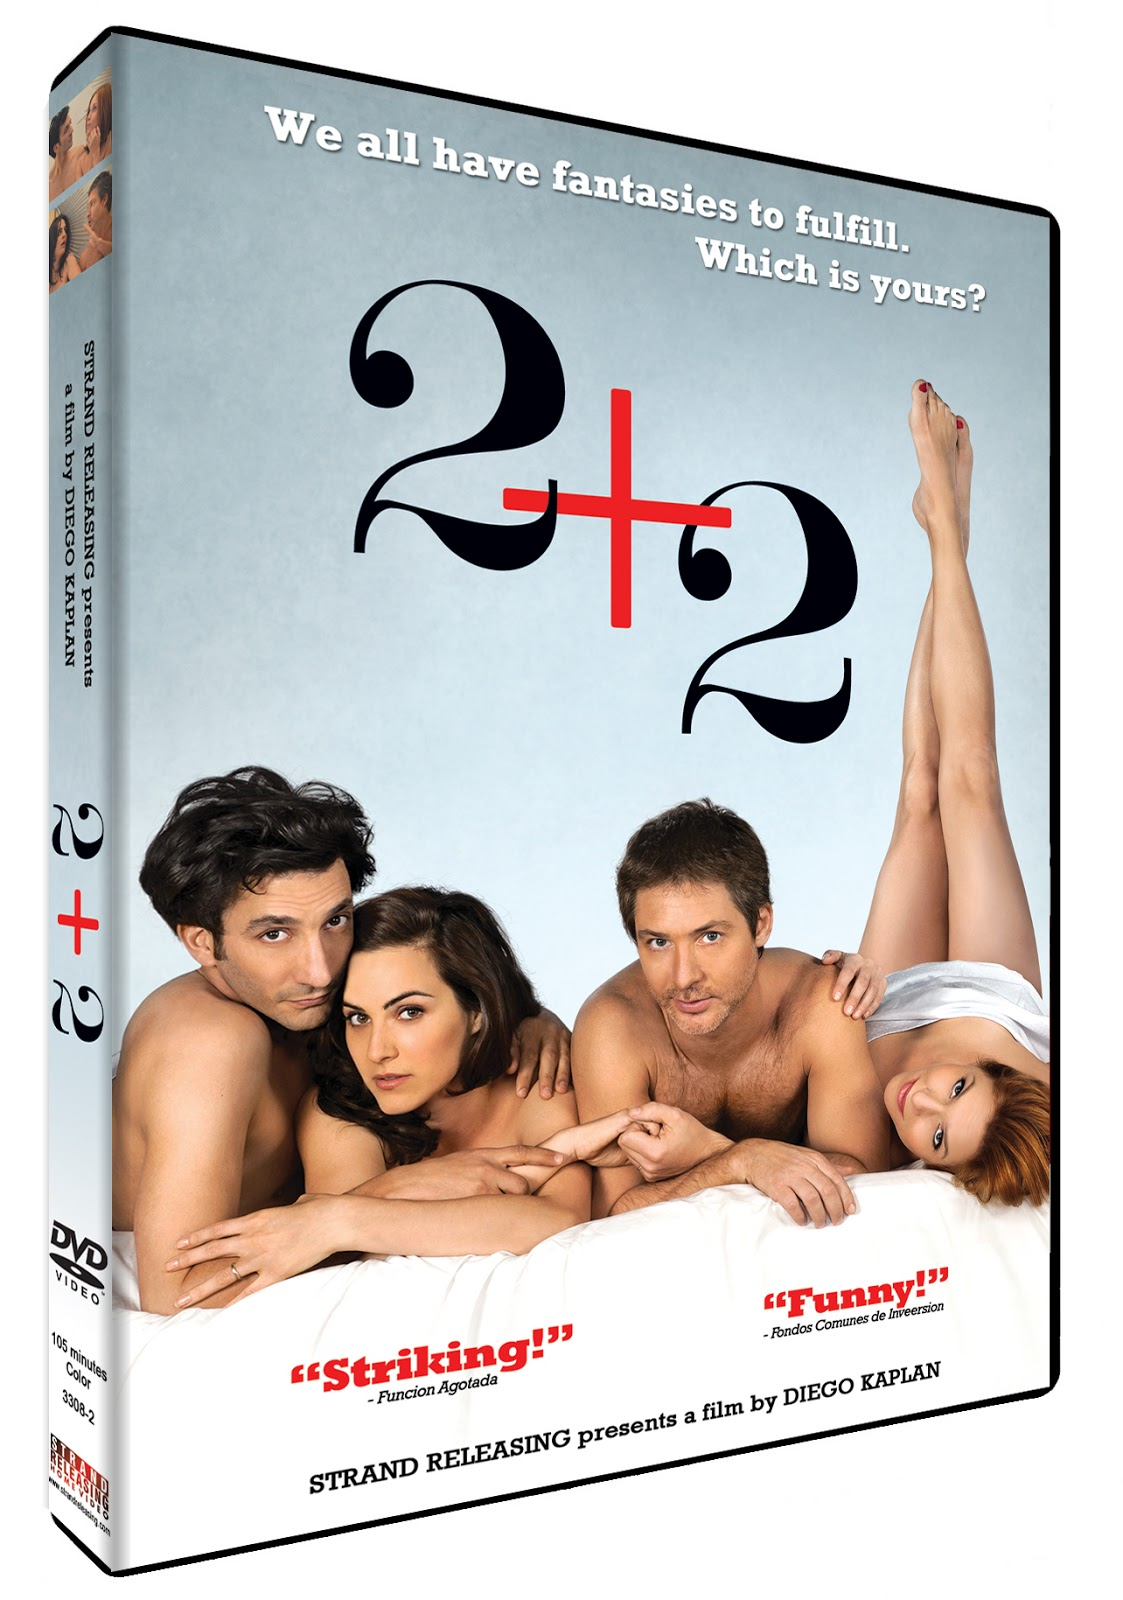 Argentina gives as another comedy about professional swingers,